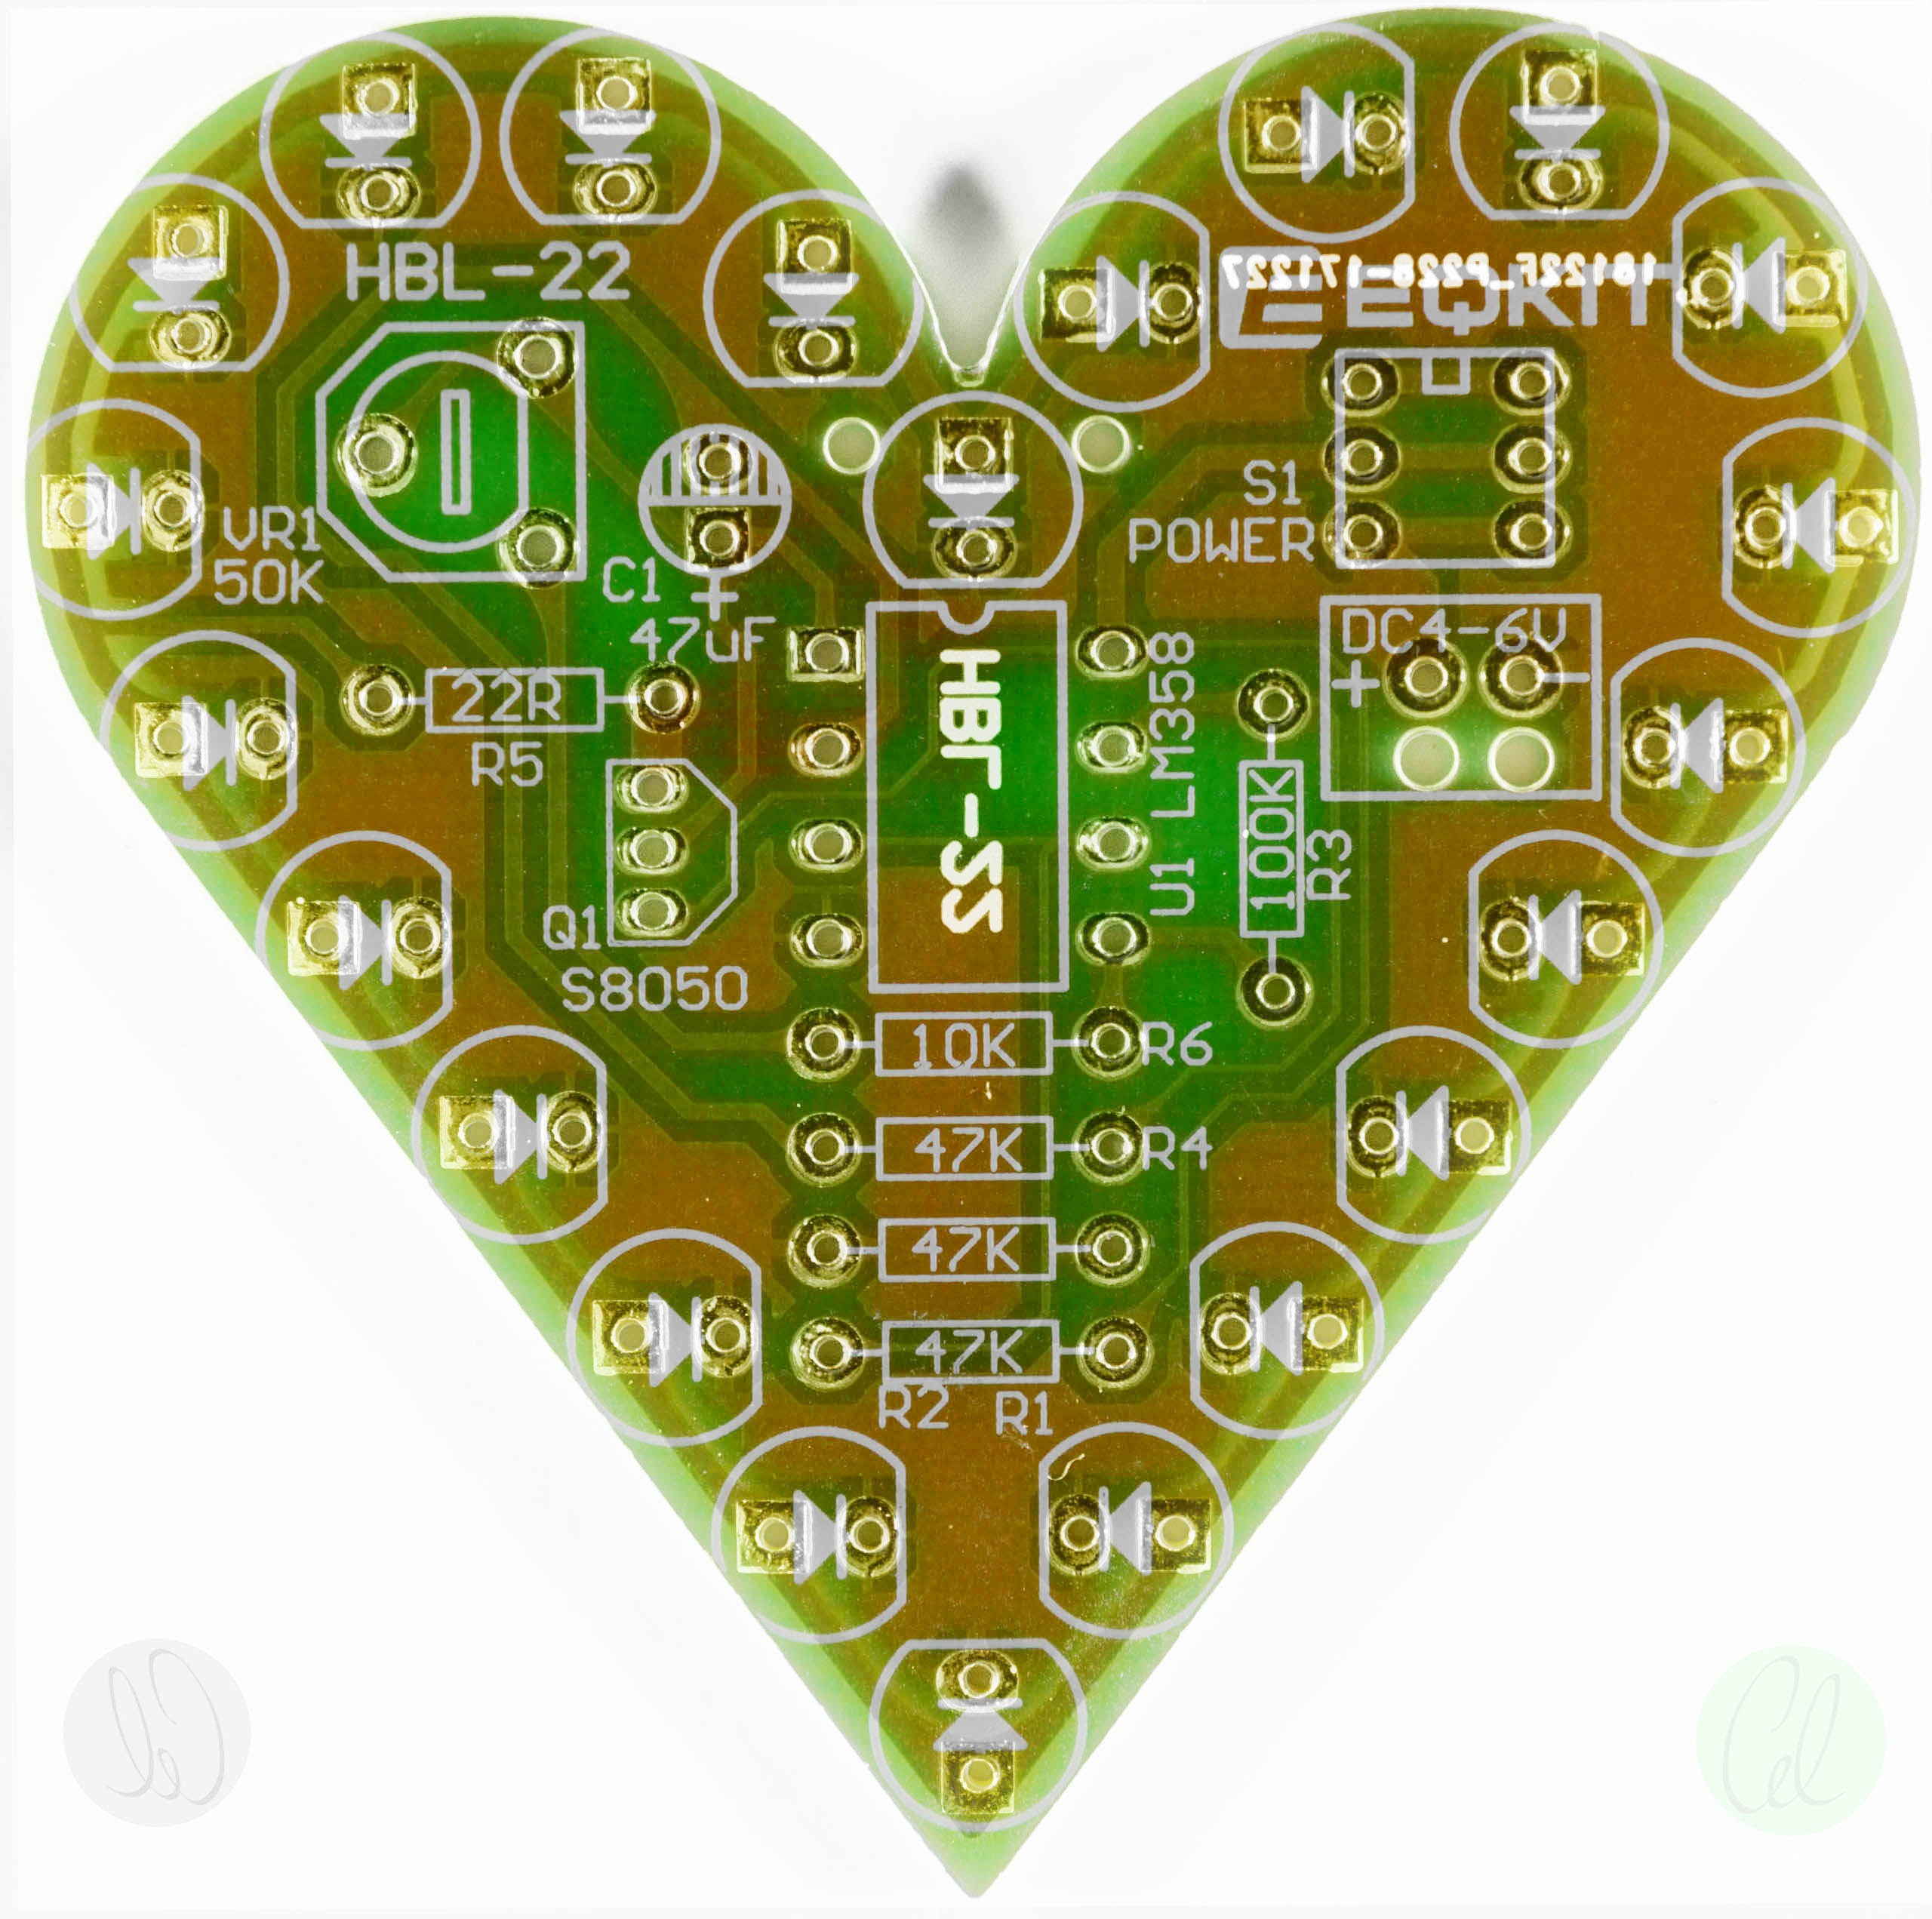 Project Eqkit Hbl 22 Breathing Green Led Heart Kit Goughs Tech Zone Circuits And Projects Blog Mains Powered White Lamp Because Of The Sophistication Circuit My Curiousity About How It Worked I Decided That Would Be Best To Draw In A Simulator Rather Than By